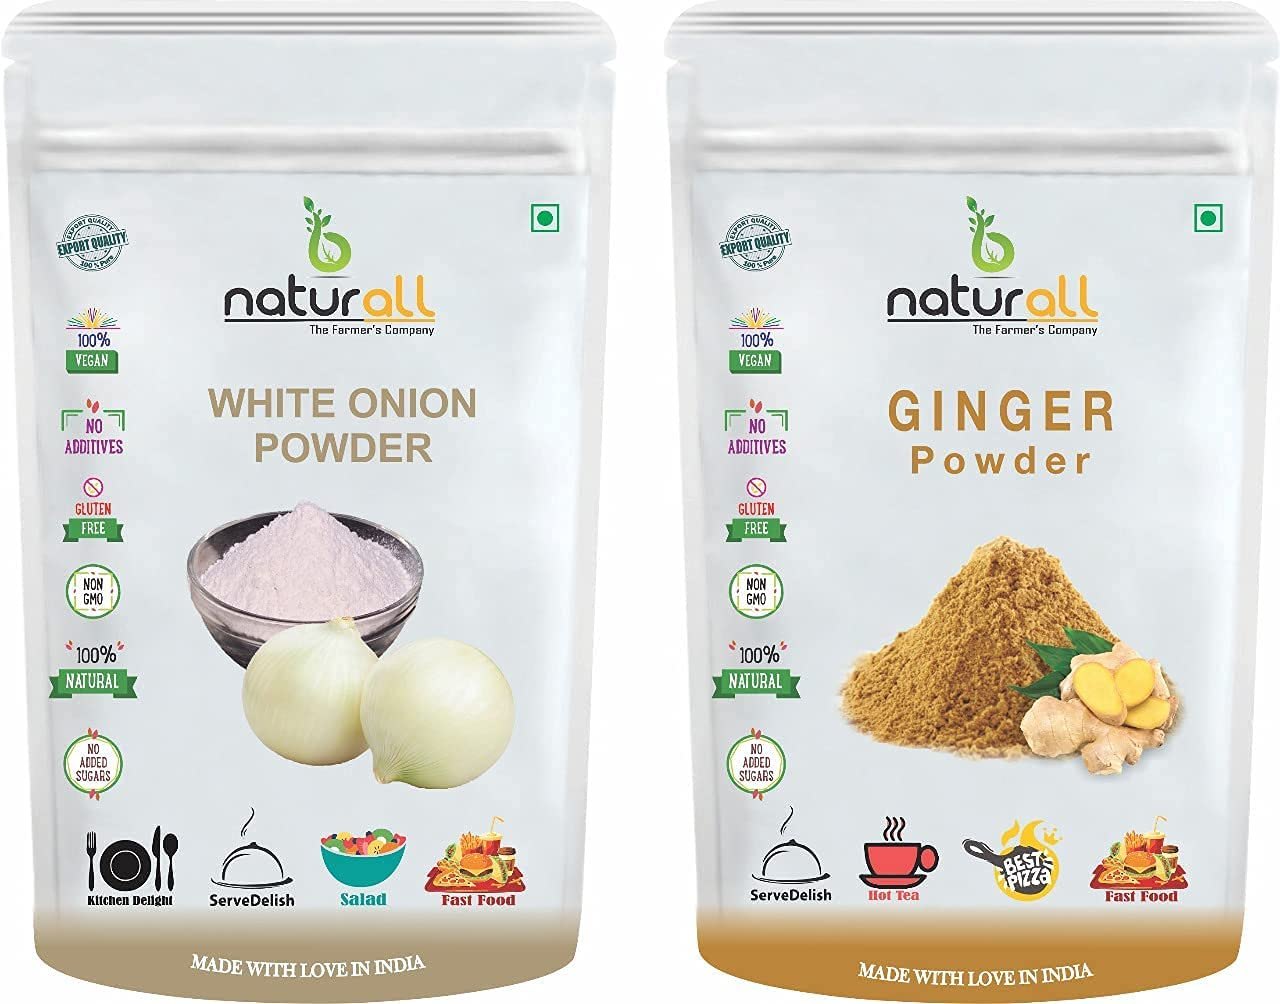 Trisha B Naturall Lowest price challenge Pack of 2 - Excellence White Powder GM Ginger 500 Onion